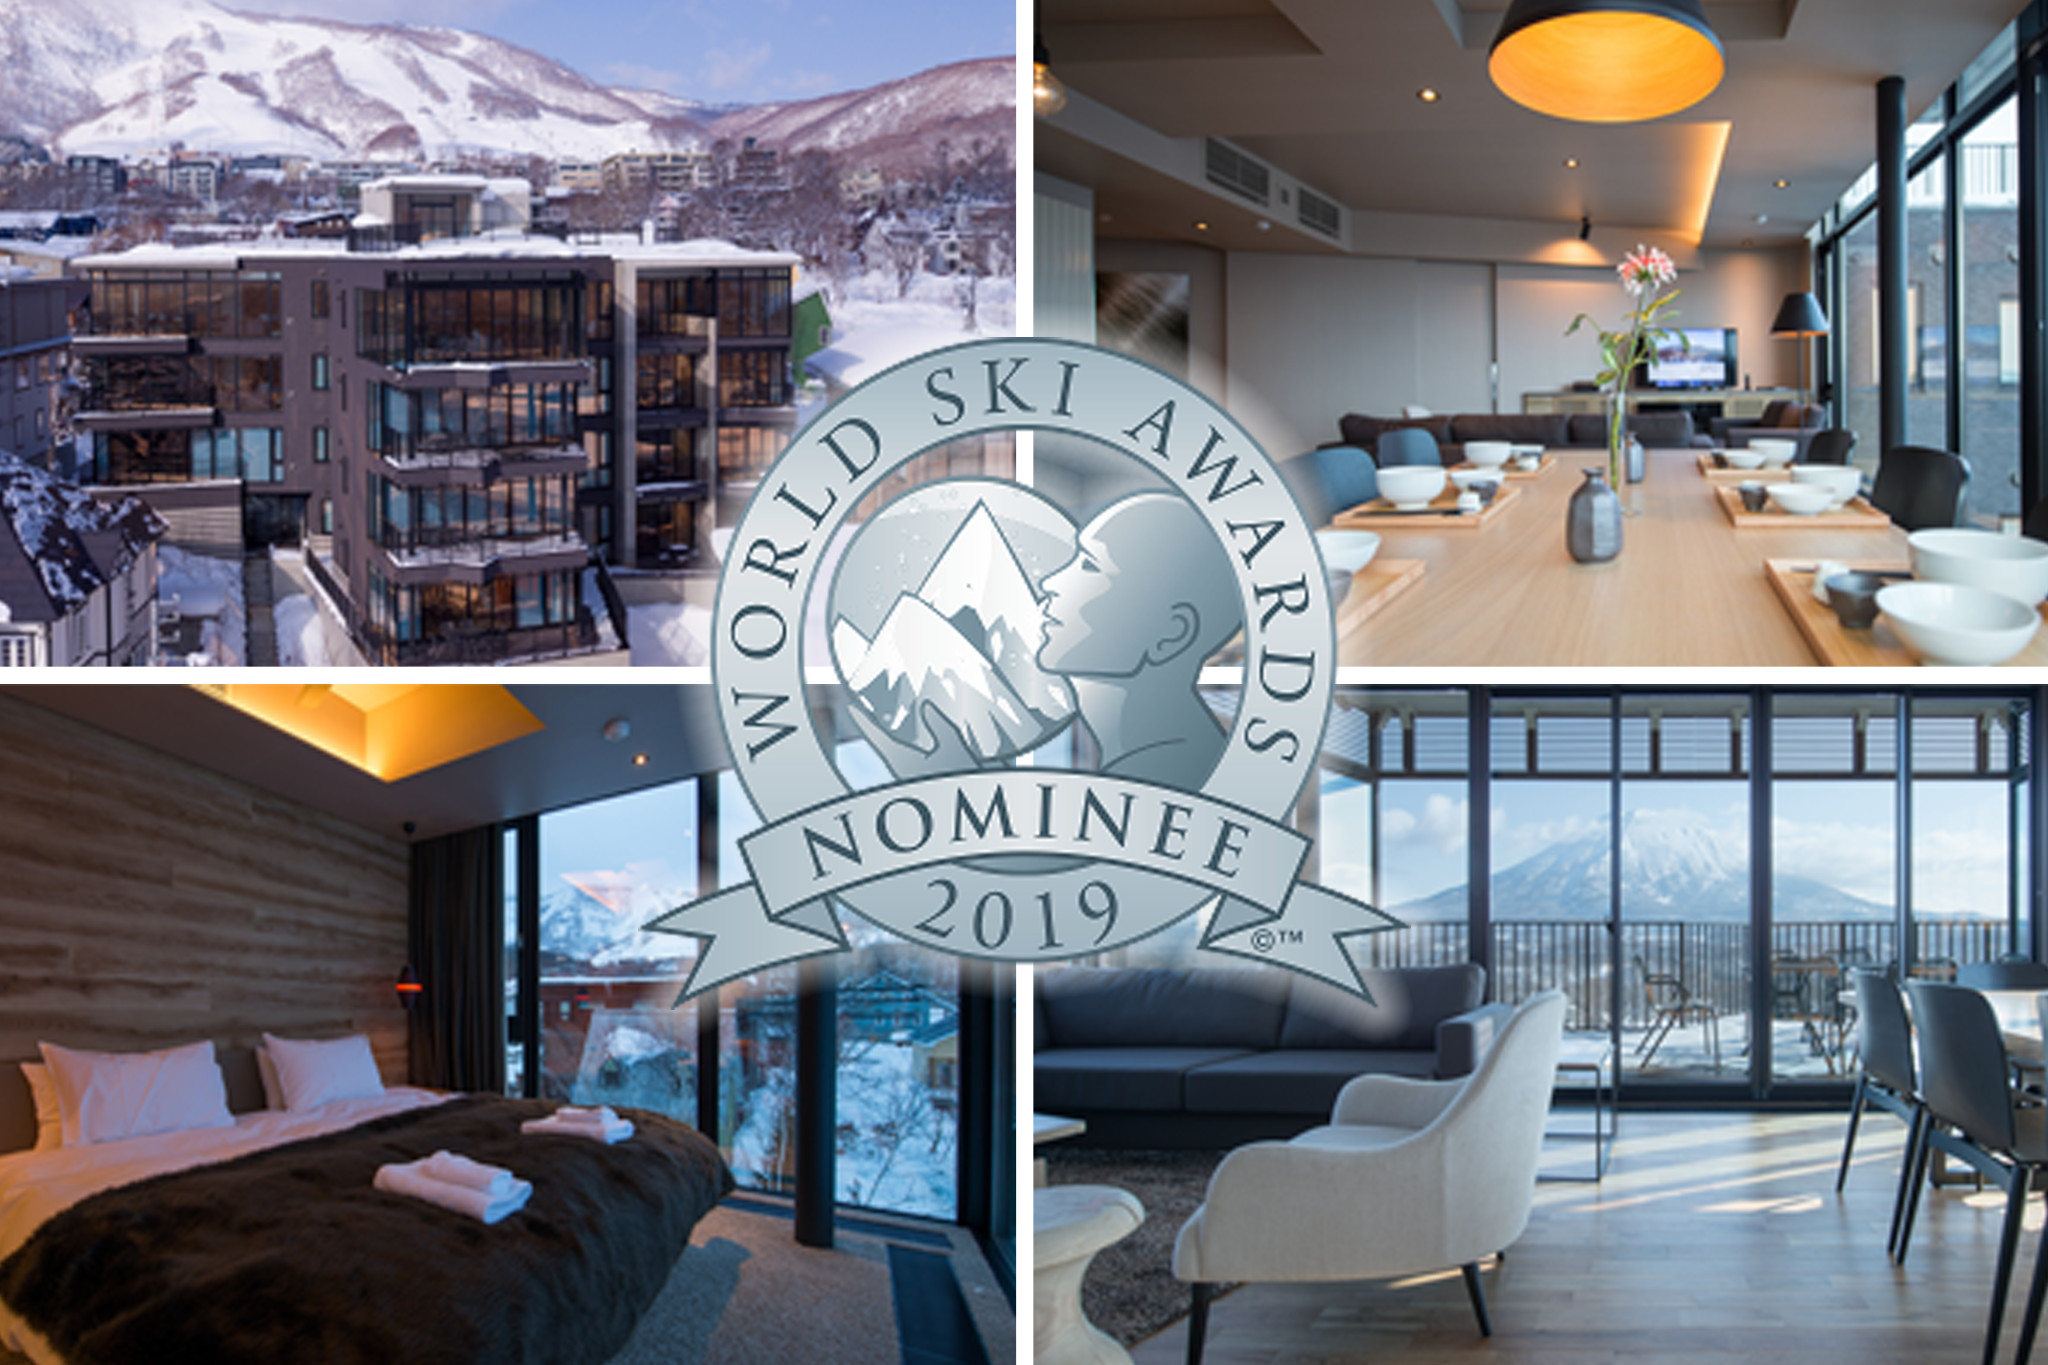 Aspect is nominated for Japan's Best Ski Chalet in the 2019 World Ski Awards.